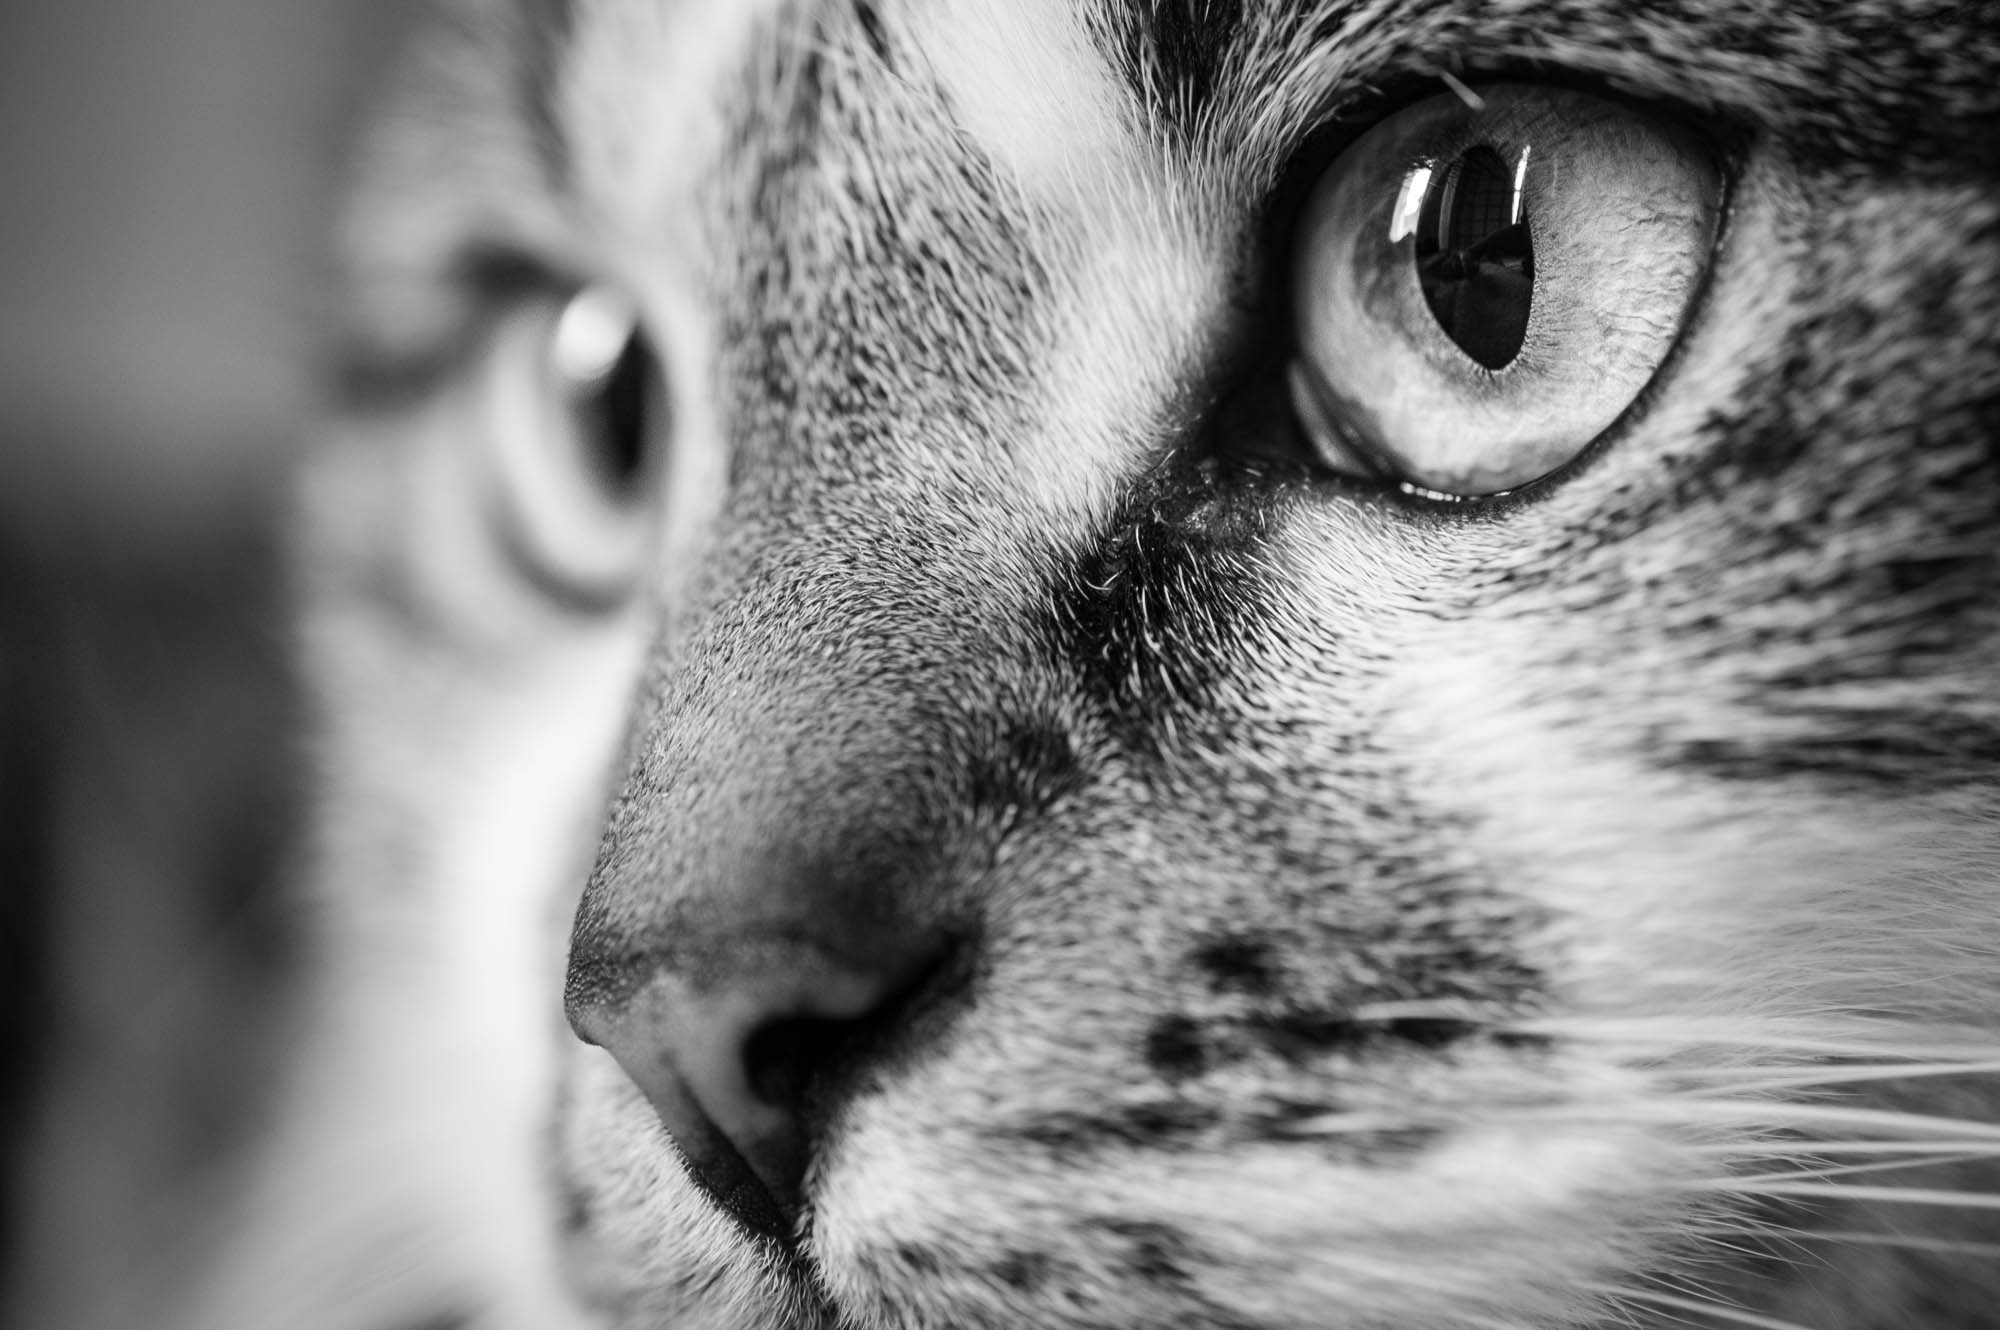 Close up image of the cat taken with an XF 60mm